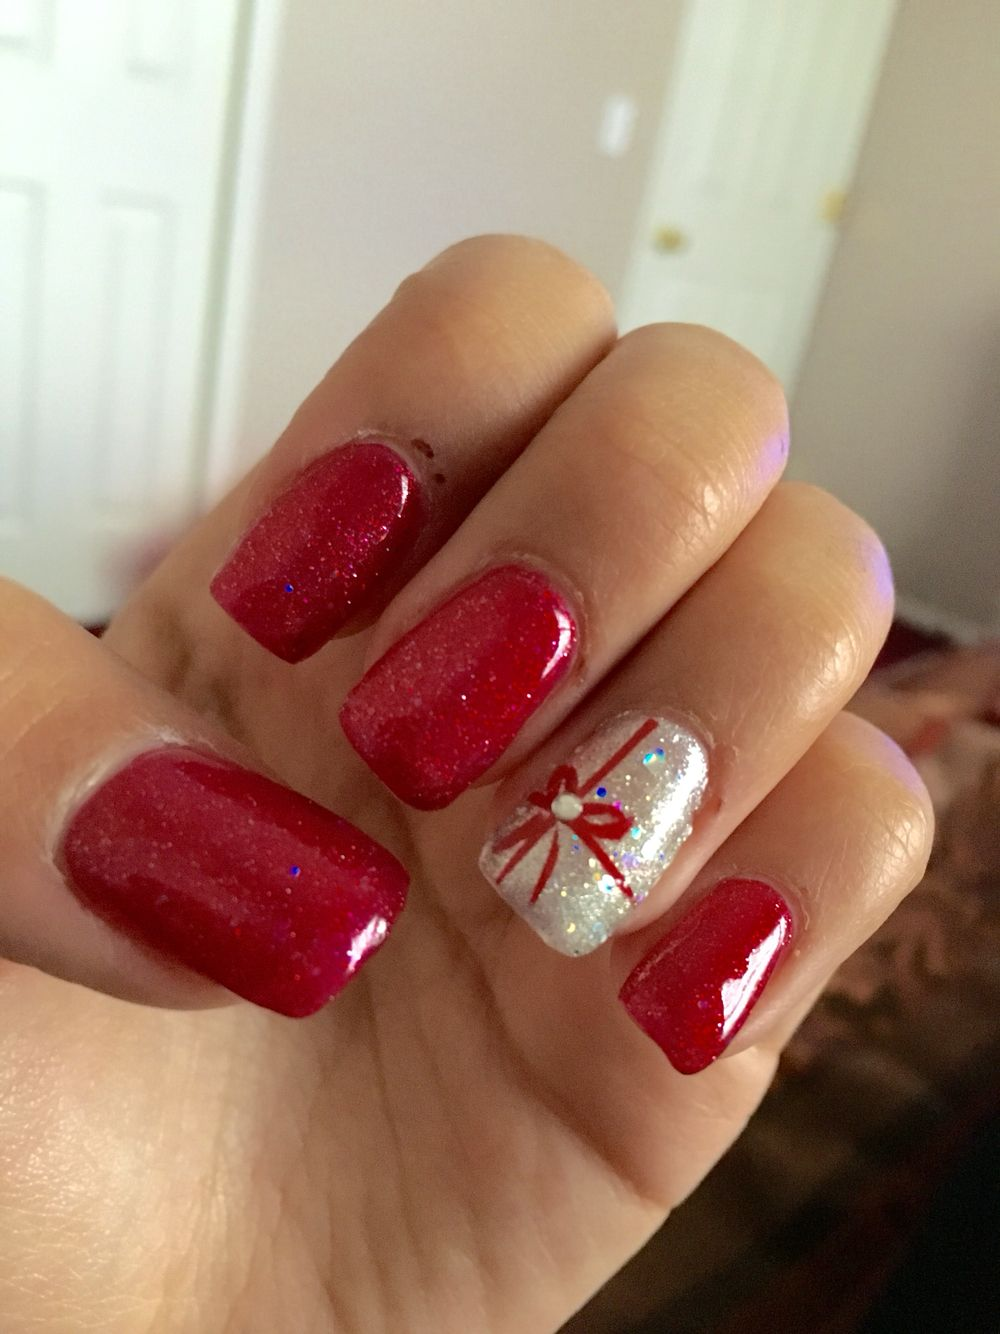 Cute Nails Christmas Nails Acrylic Gel Shilac Red Silver Sparkly Glitter Ri Christmas Nails Acrylic Christmas Nail Designs Acrylic Red Christmas Nails